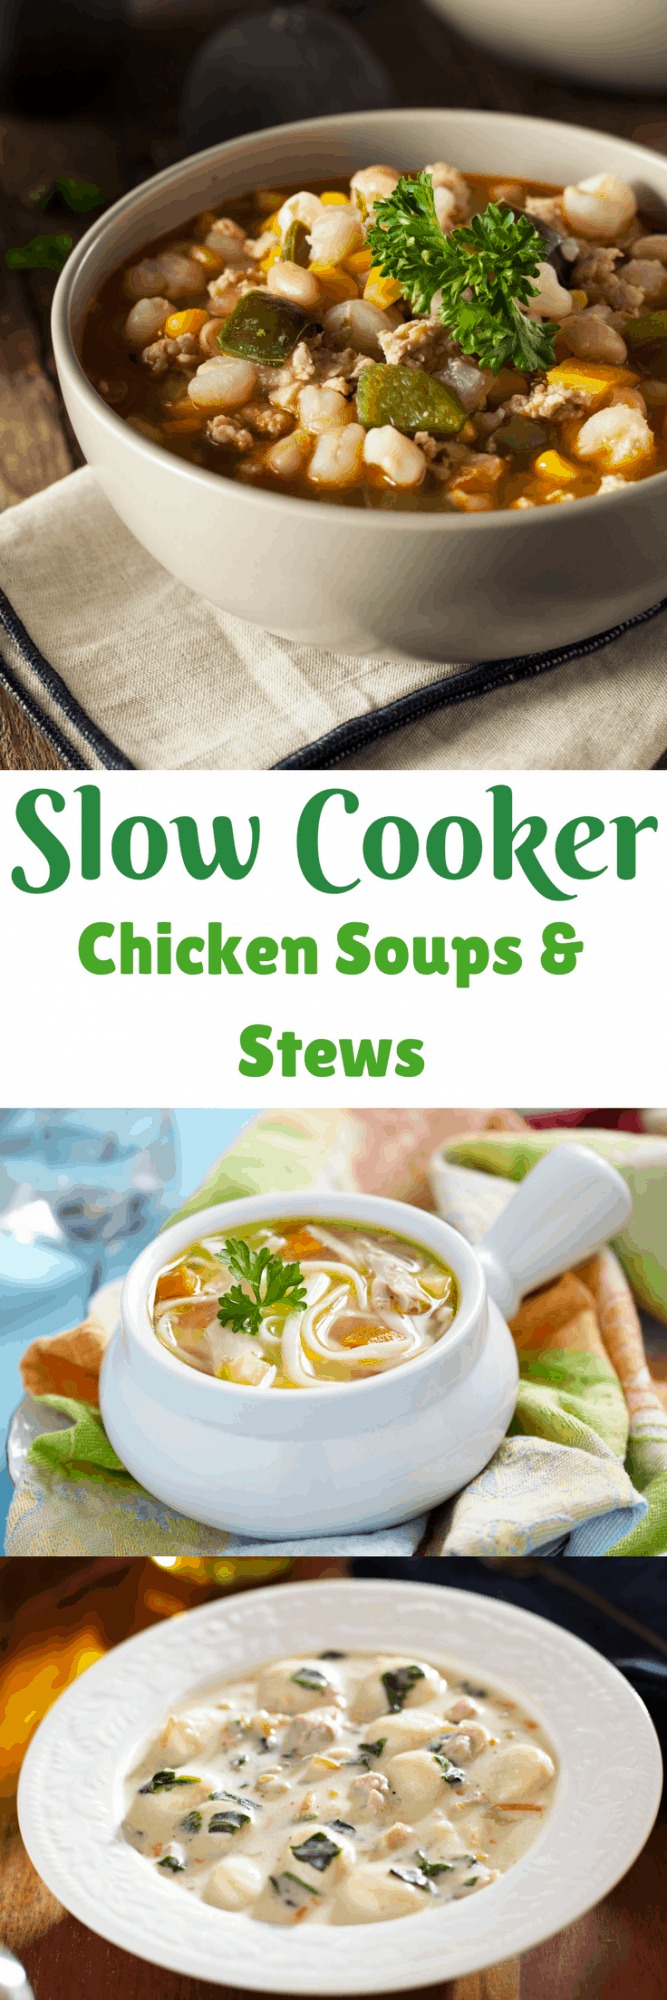 Slow Cooker Chicken Soup, Stew, and Chili Recipes